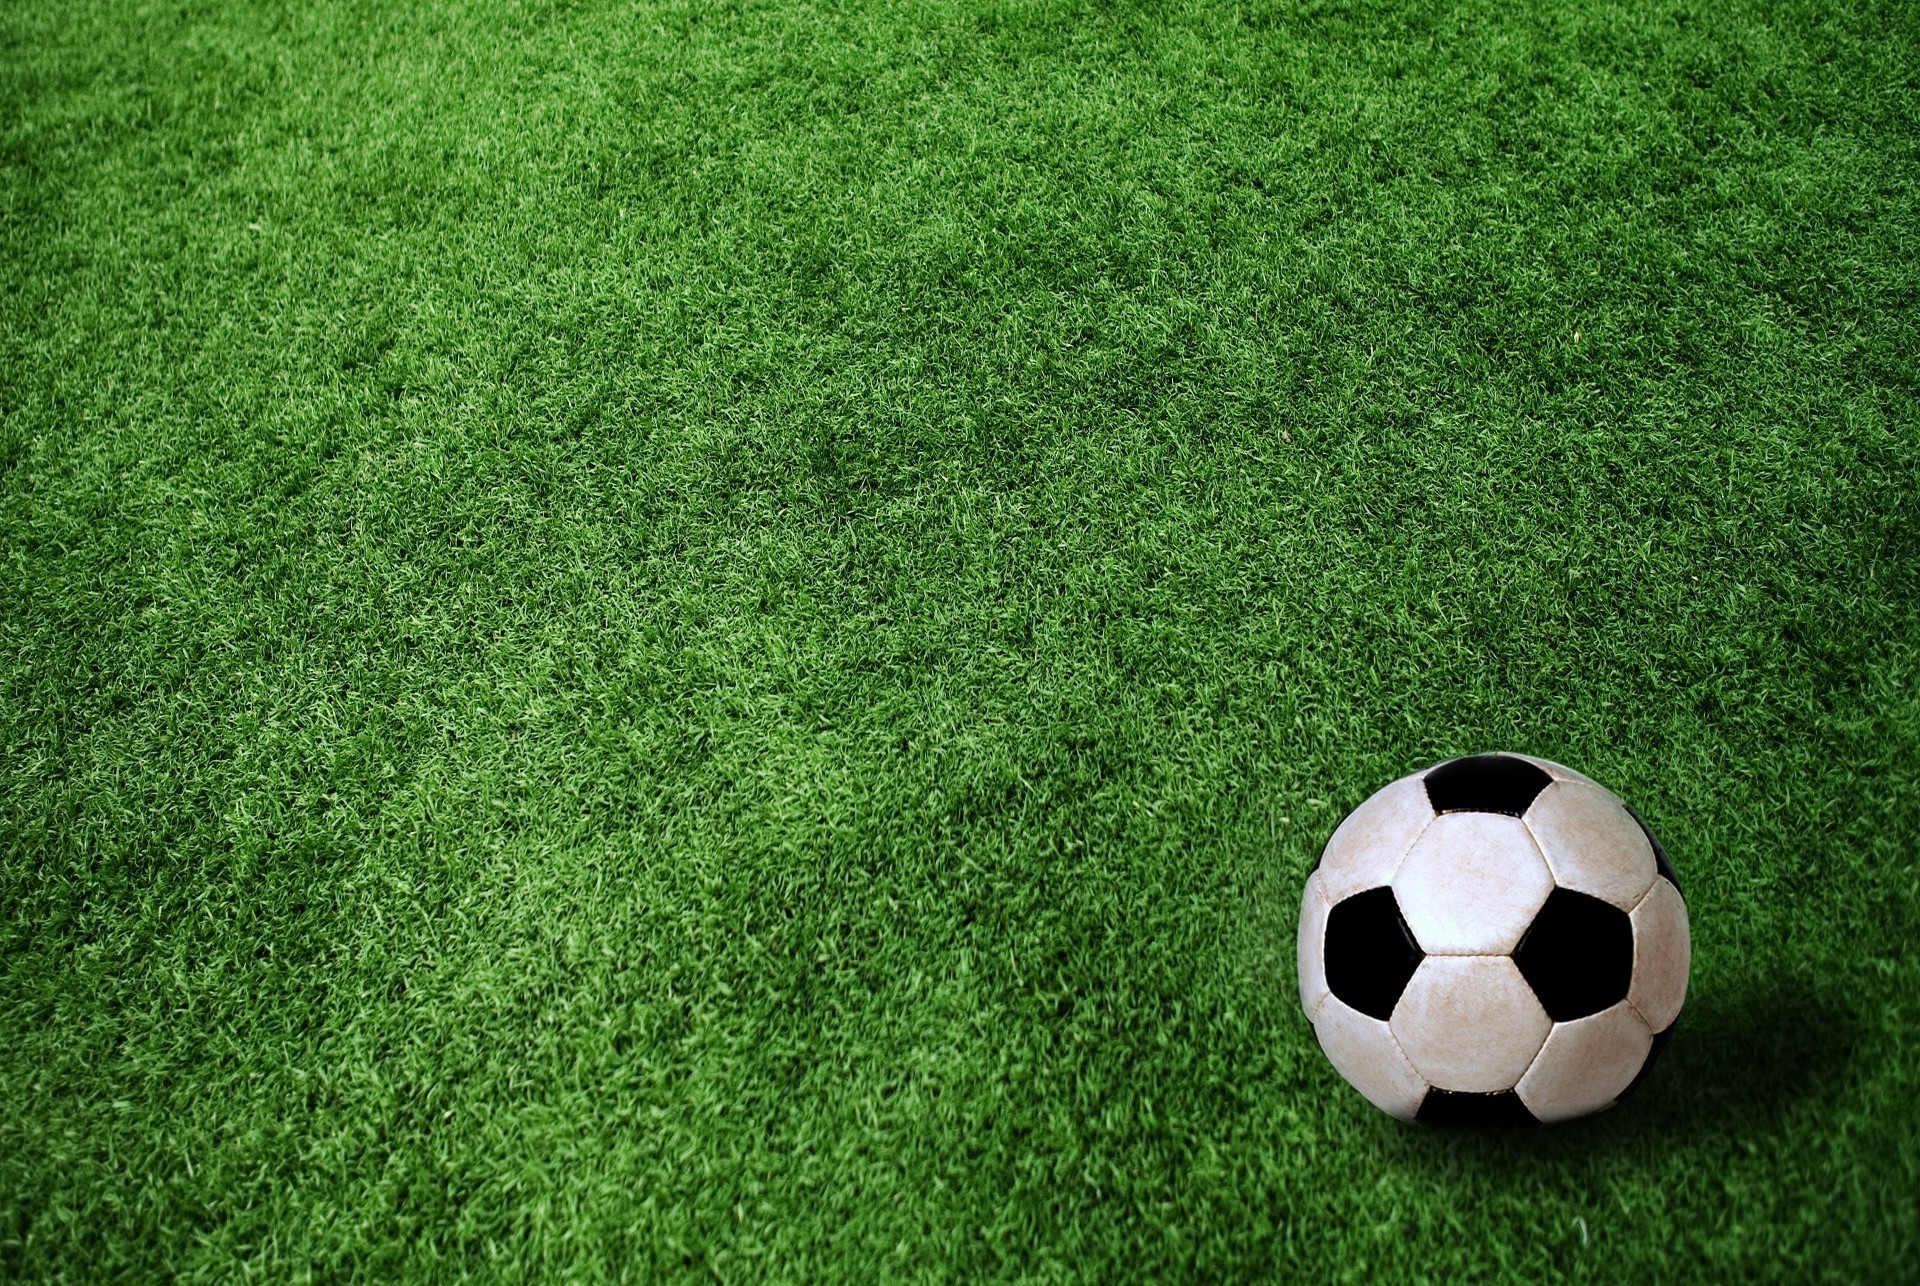 football soccer ball play leather turf goal game grass field sport lawn stadium ground match championship playground competition desktop